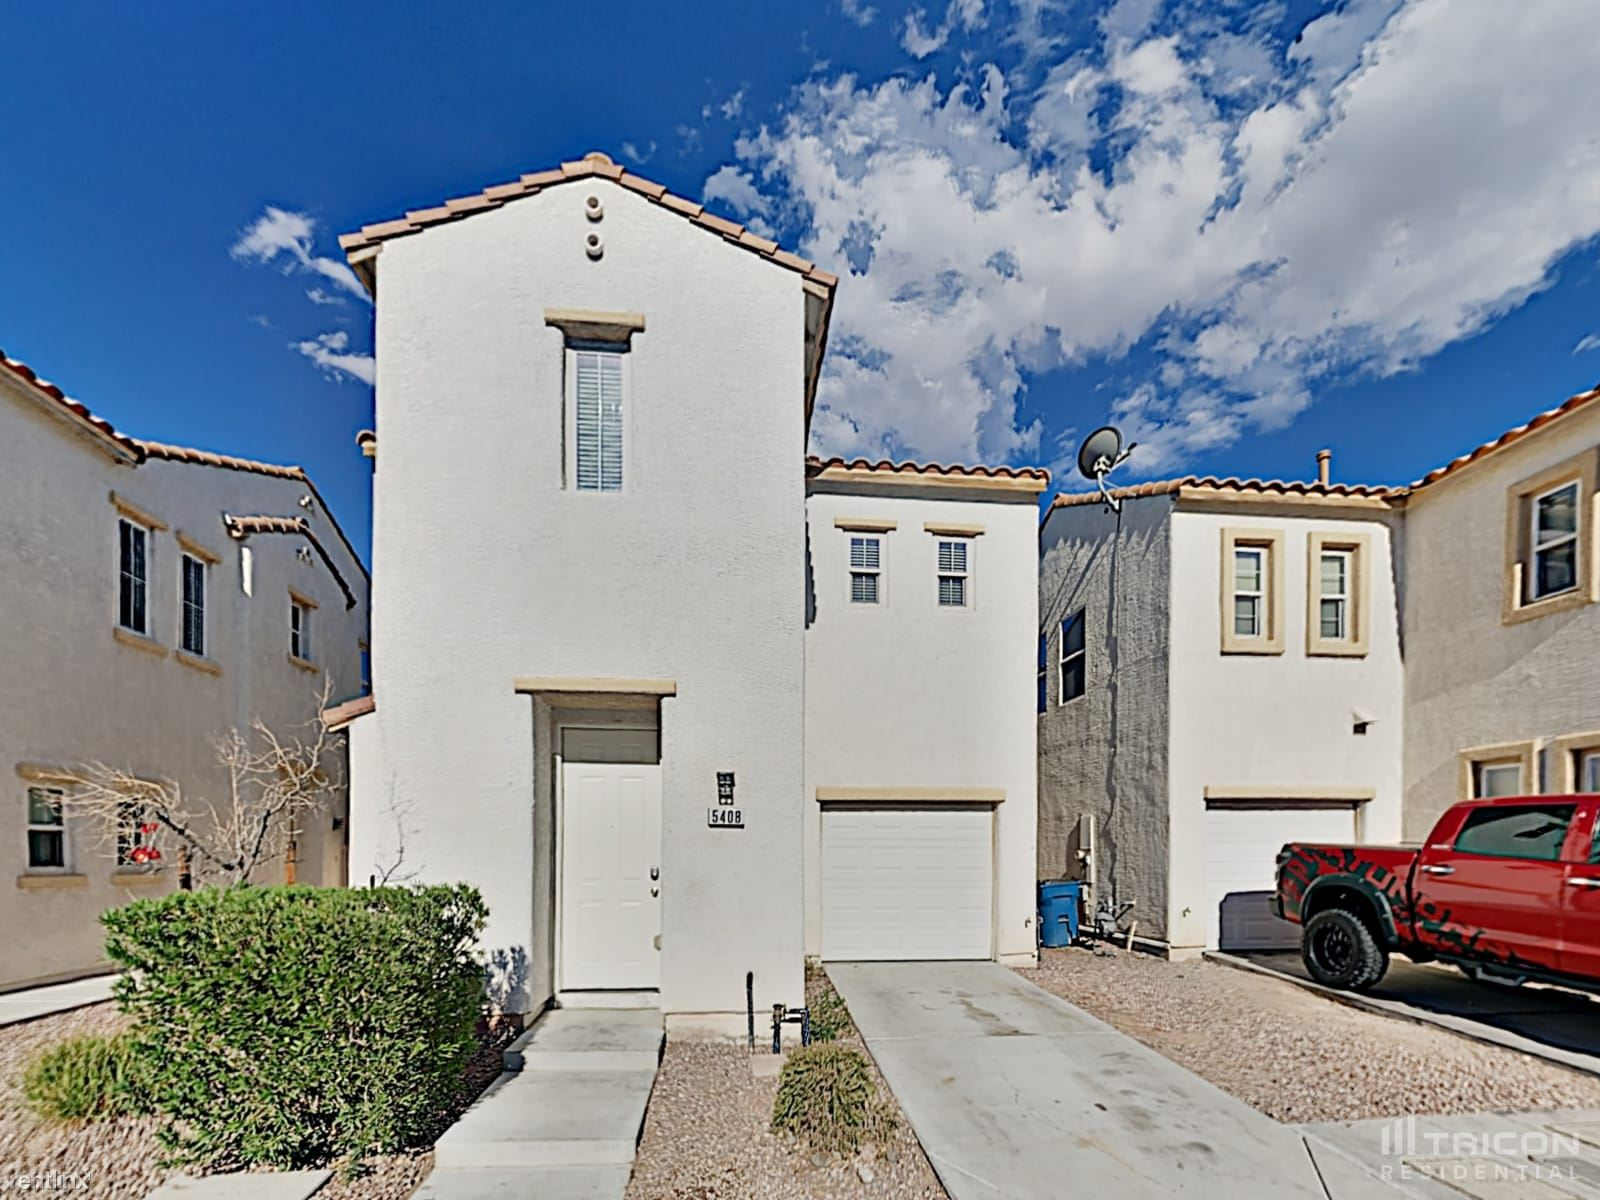 5408 Flowing Spring Street - 1999USD / month